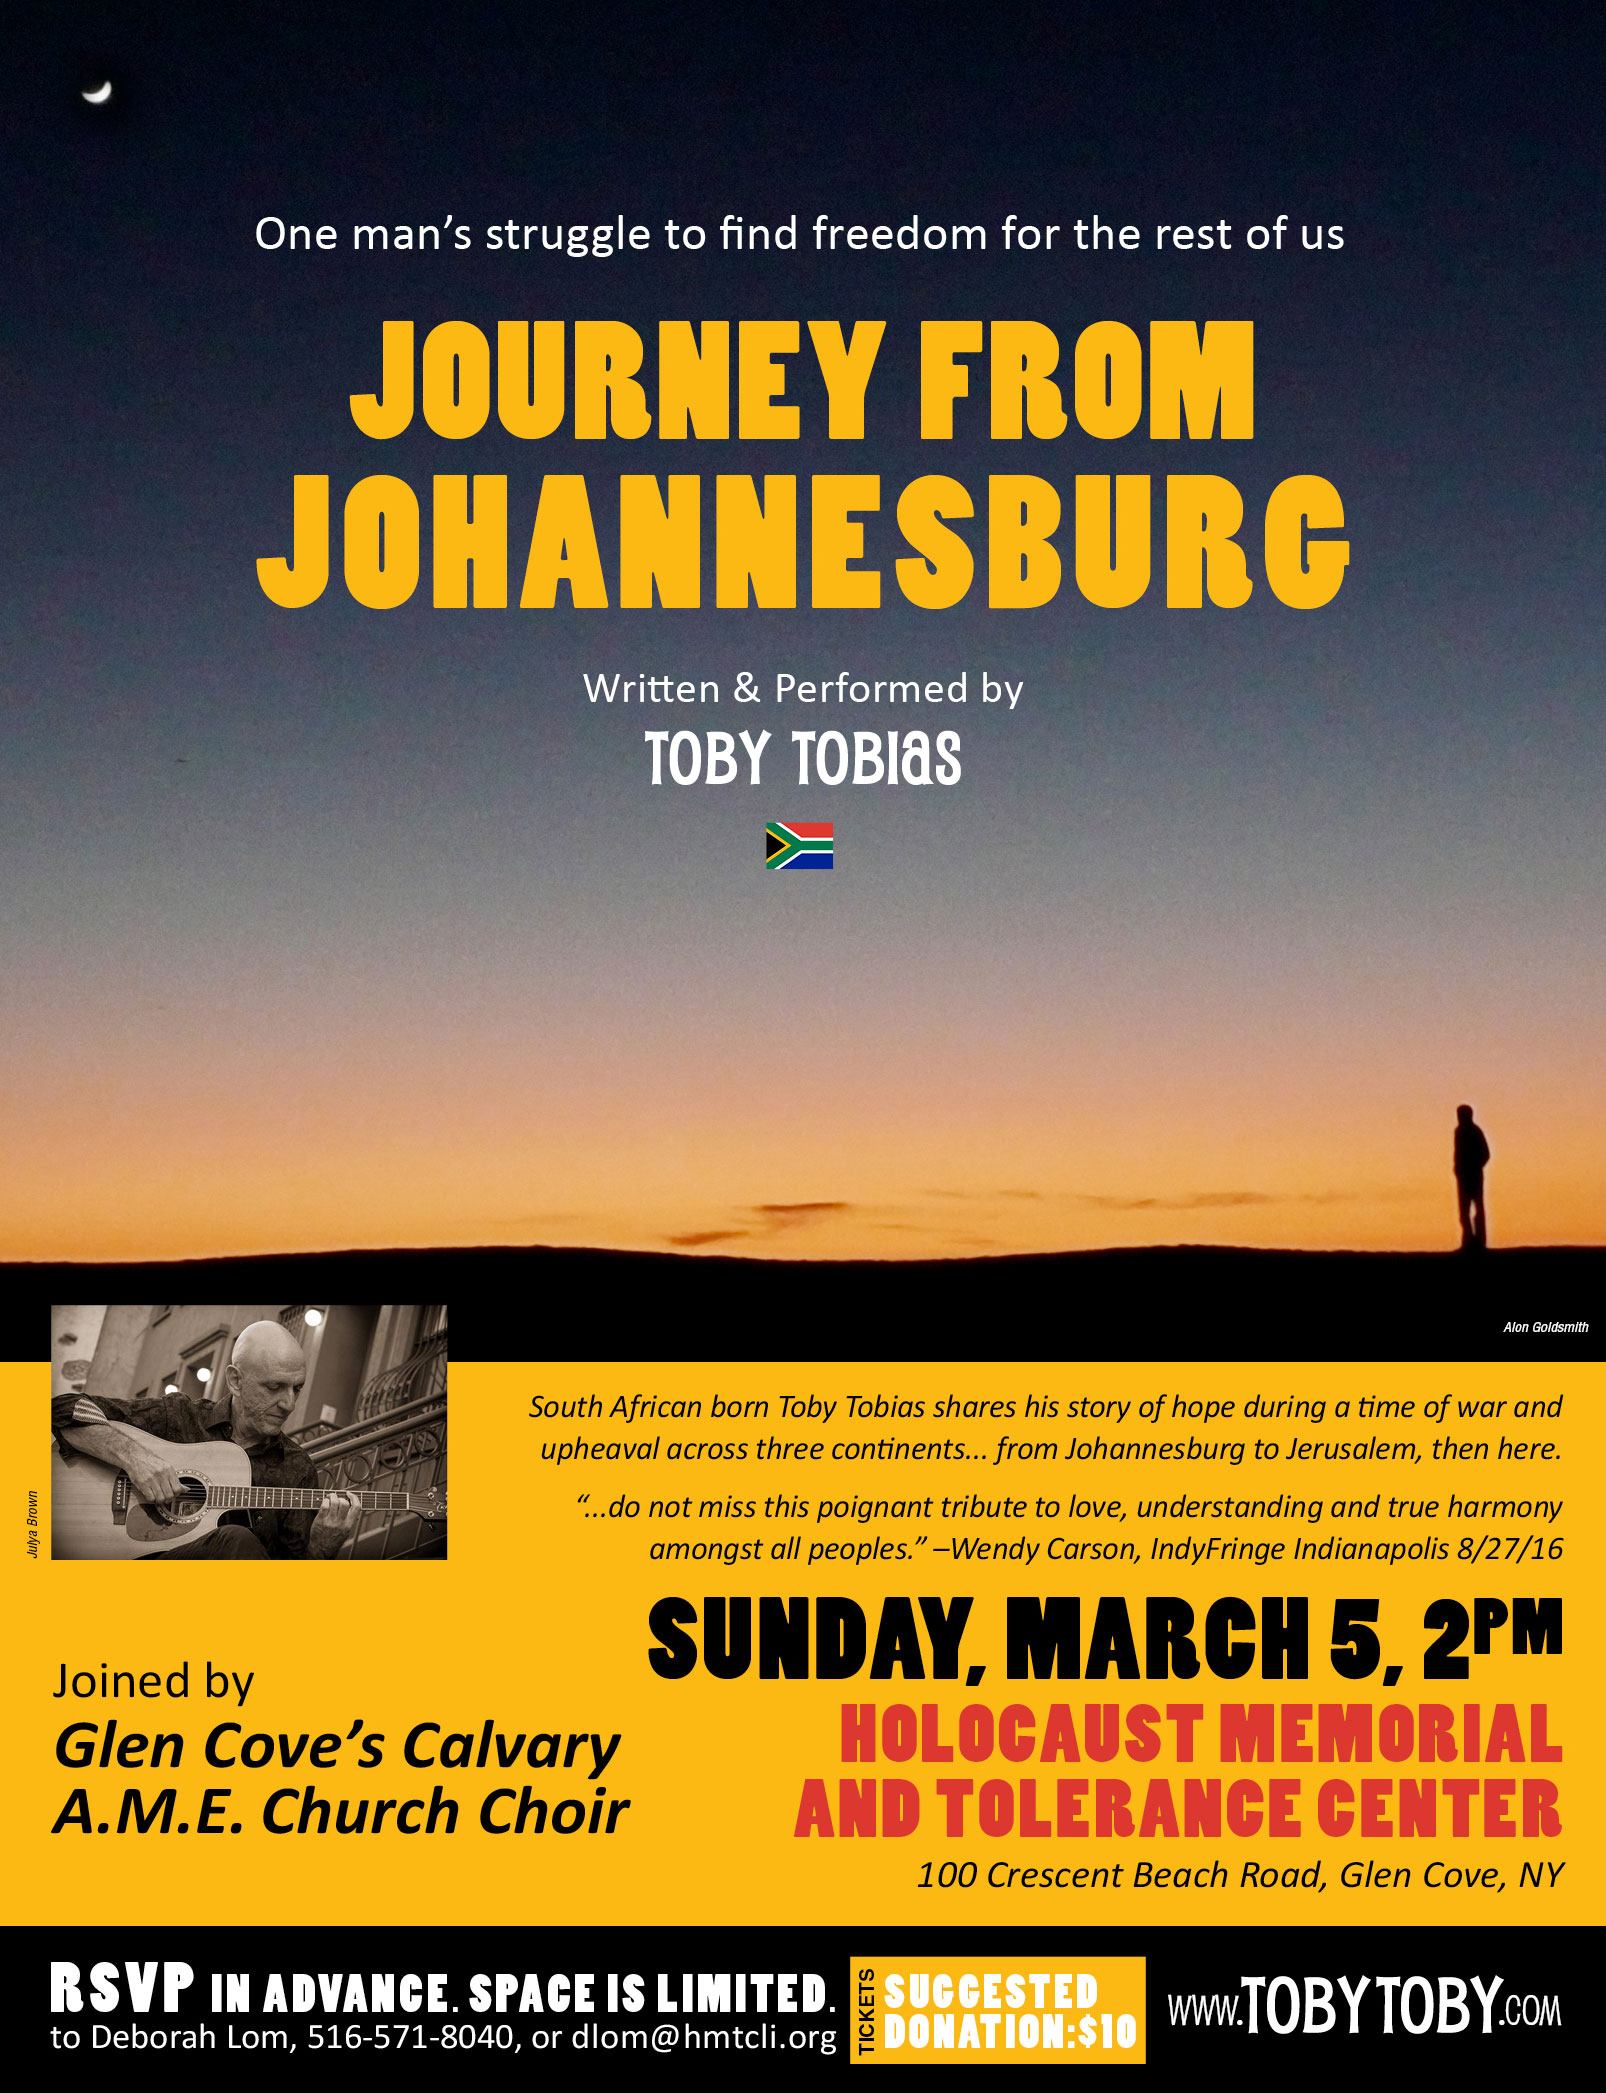 Journey From Johannesburg at the Holocaust Memorial & Tolerance Center of Glen Cove